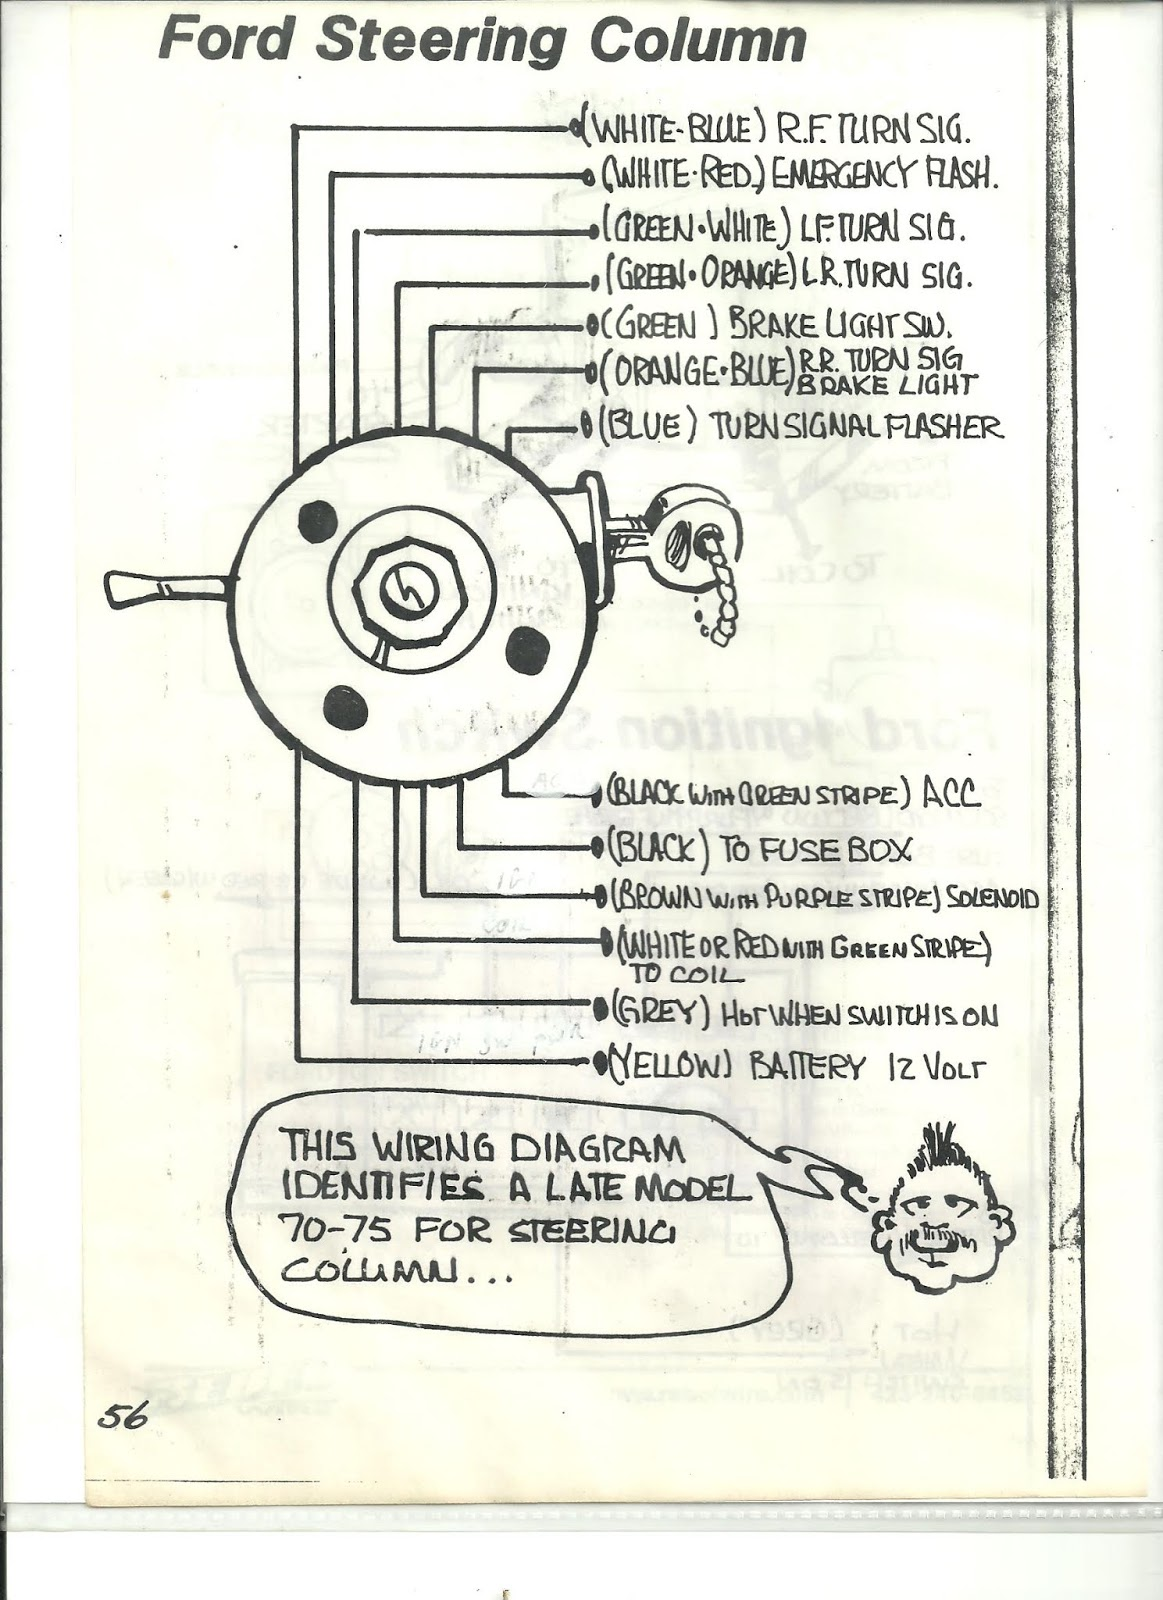 rebel wiring diagrams rebel wire: look!! wiring diagrams!!! 1967 rambler rebel wiring diagram #12